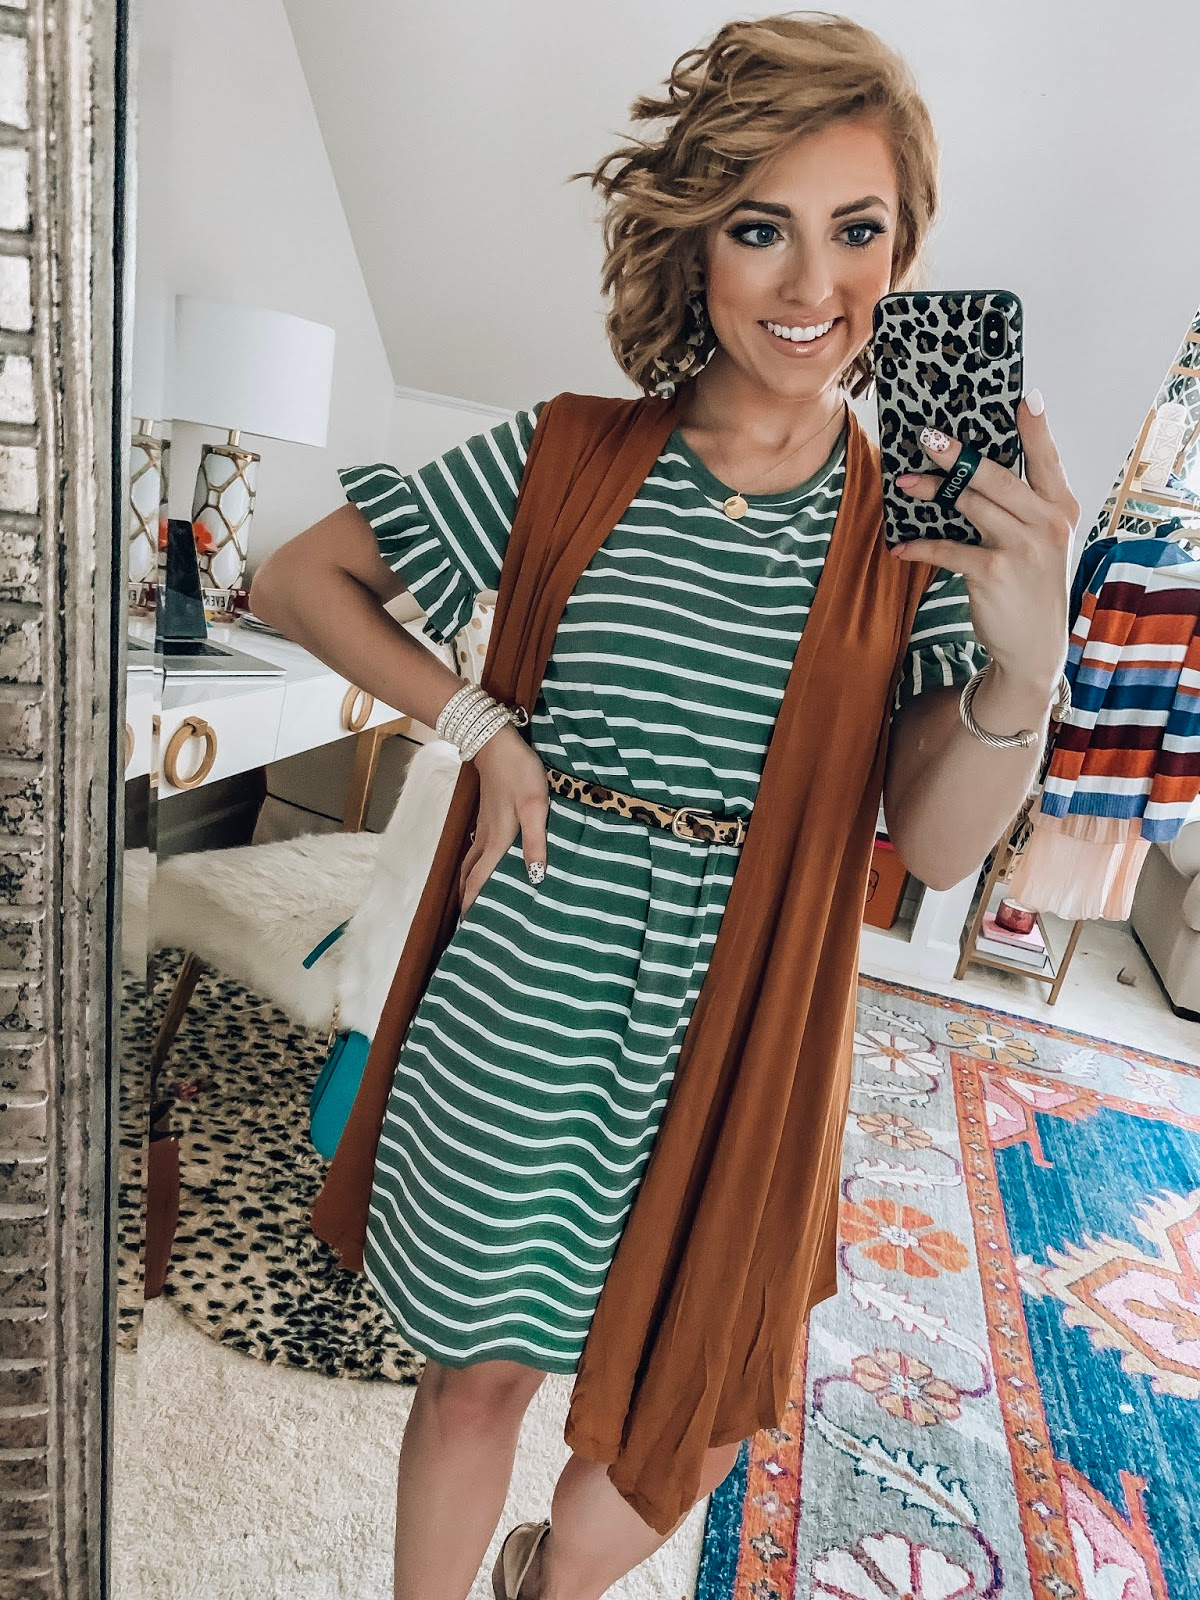 $17 Ruffle Sleeve T-shirt  Dress + $17 Vest - The Perfect look for transitioning into fall - Recent Amazon Finds - Something Delightful Blog